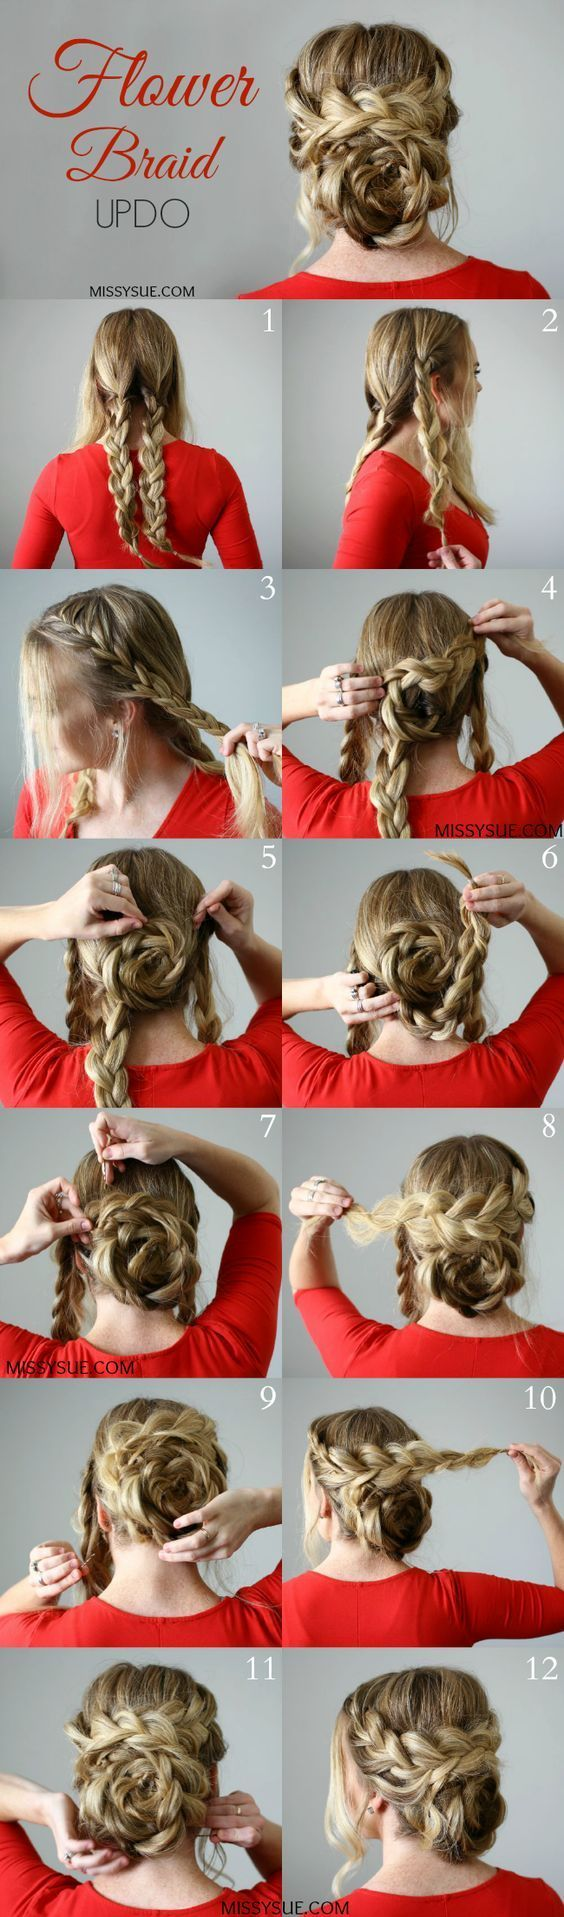 20 Hair Styles You Can Totally DIY - Page 3 of 5 - Trend To Wear: